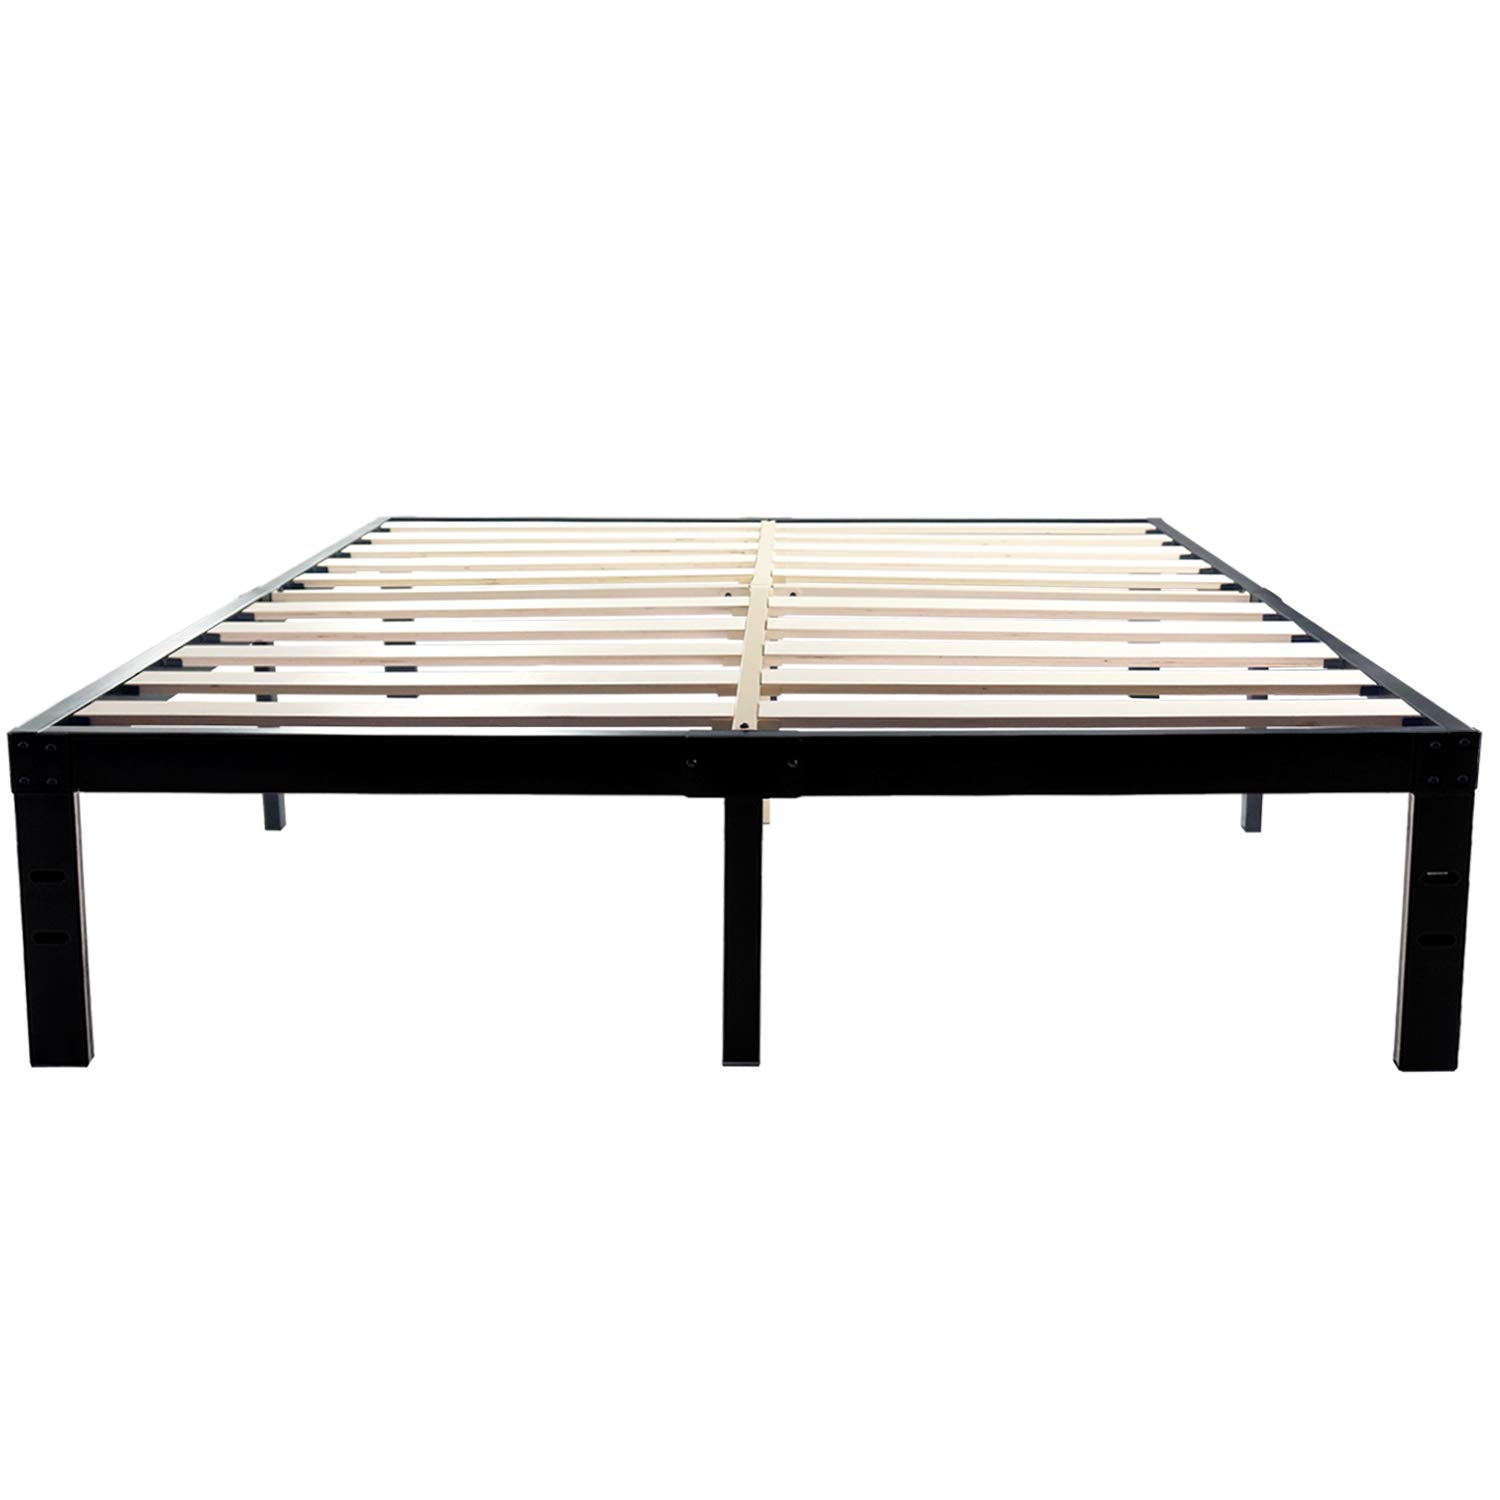 14 Inch Metal Platform Bed Frames / Wood Slat Support / No Box Spring Needed / 3500 lbs Heavy Duty/ Noise Free/ With storage / Black Finish Queen by HOMDOCK